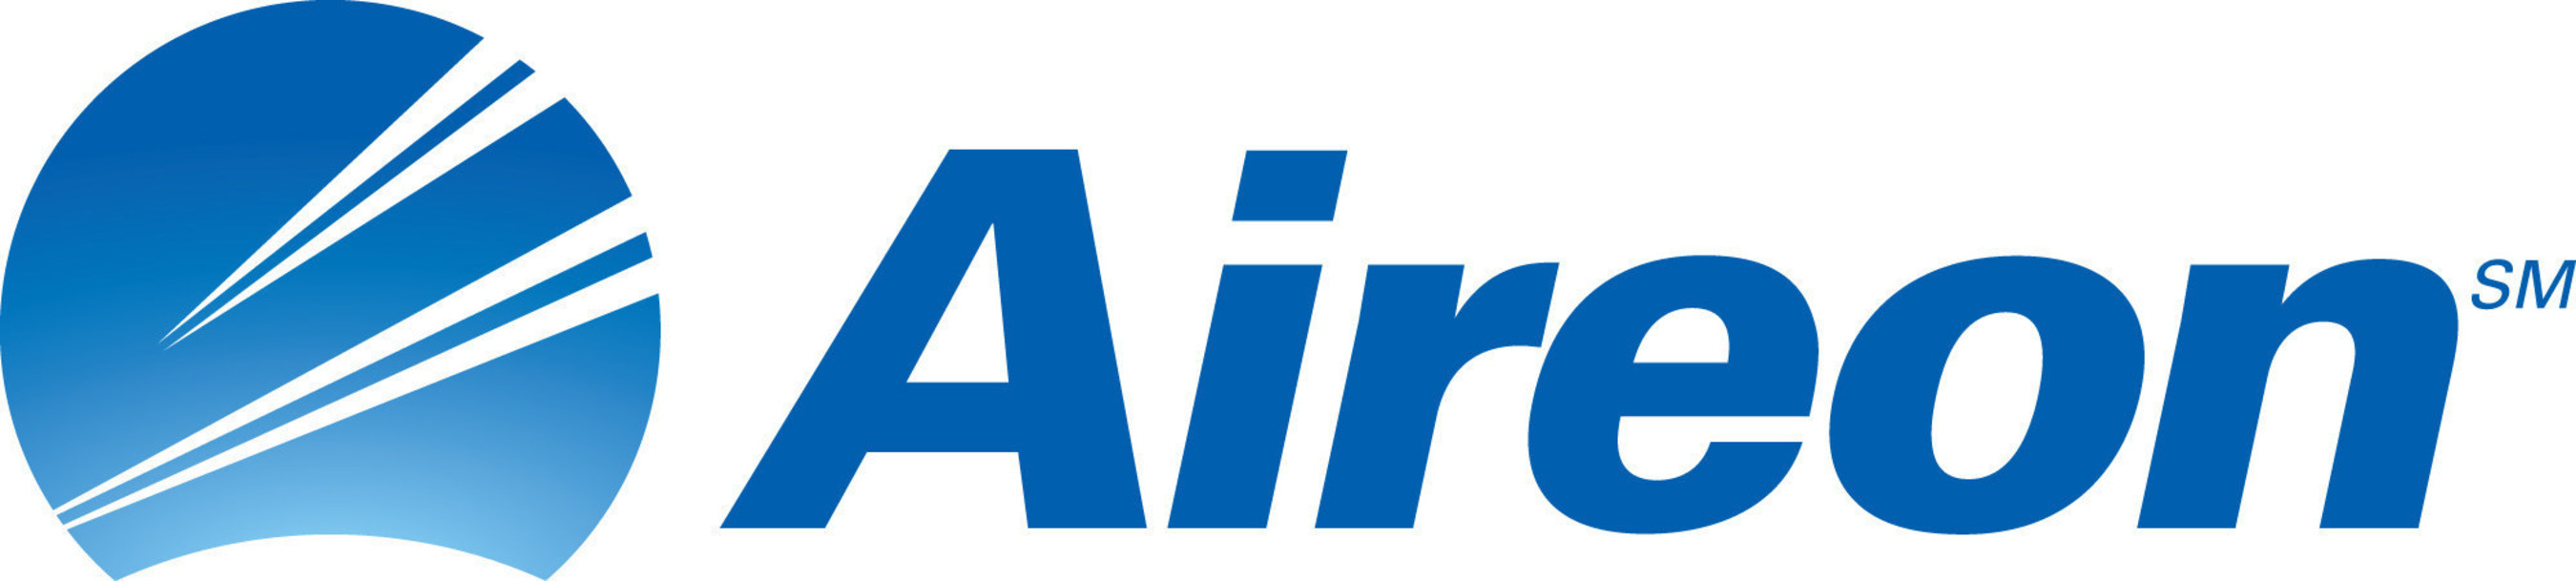 Airservices Australia Examines Deploying Space-Based ADS-B